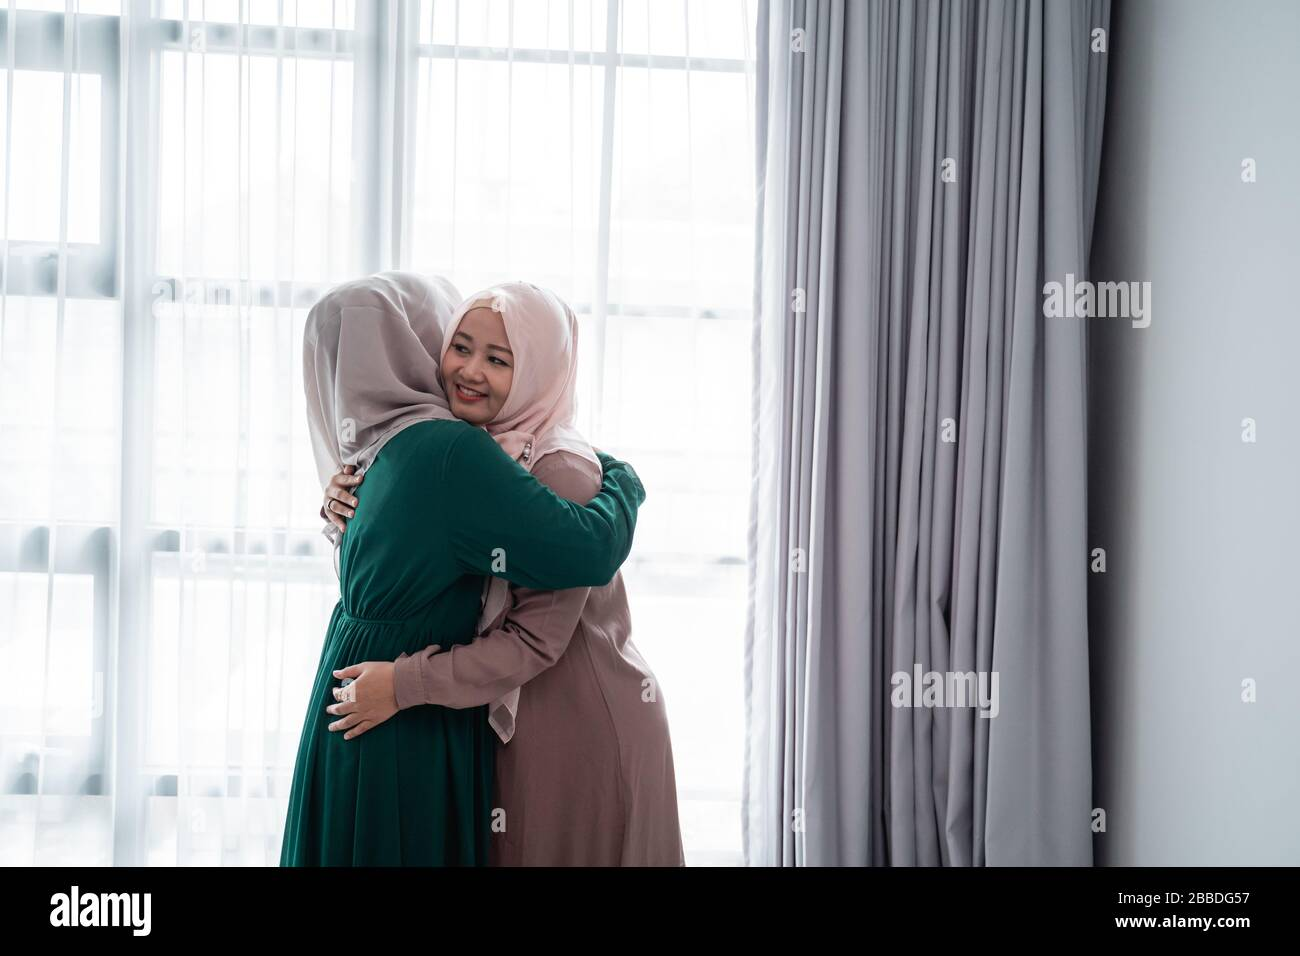 muslim hijab woman happily entrace home opens the door meets and hug her sister Stock Photo